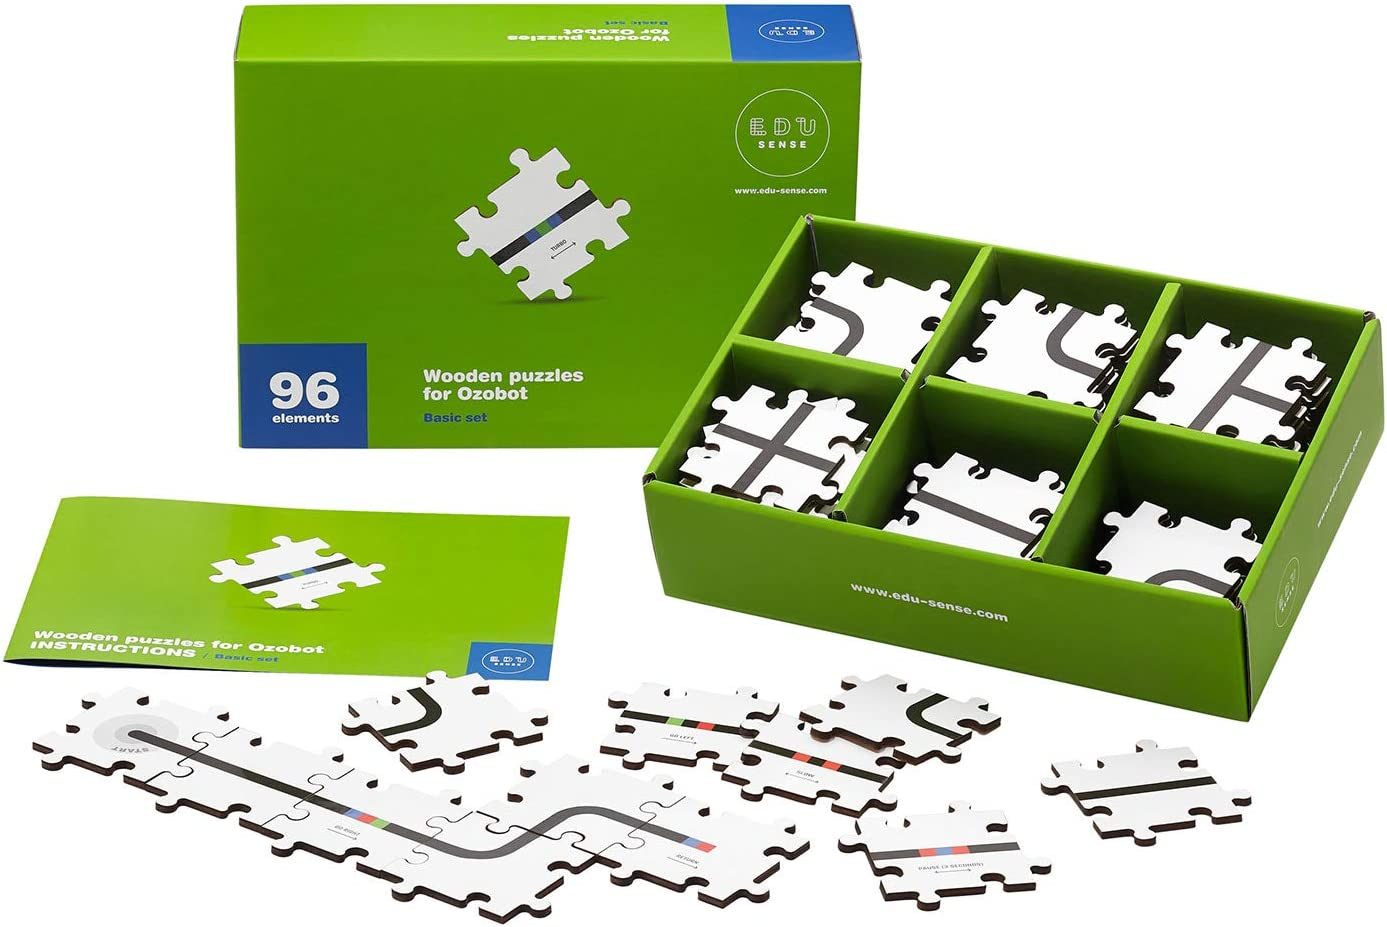 Wooden Puzzles for Ozobot | Basic Set of 96 Pieces | Develops Creativity, Logical Thinking & Learns The Basics of Programming | Educational Toy | Kids Coding Kit | for Children Aged 5 and More